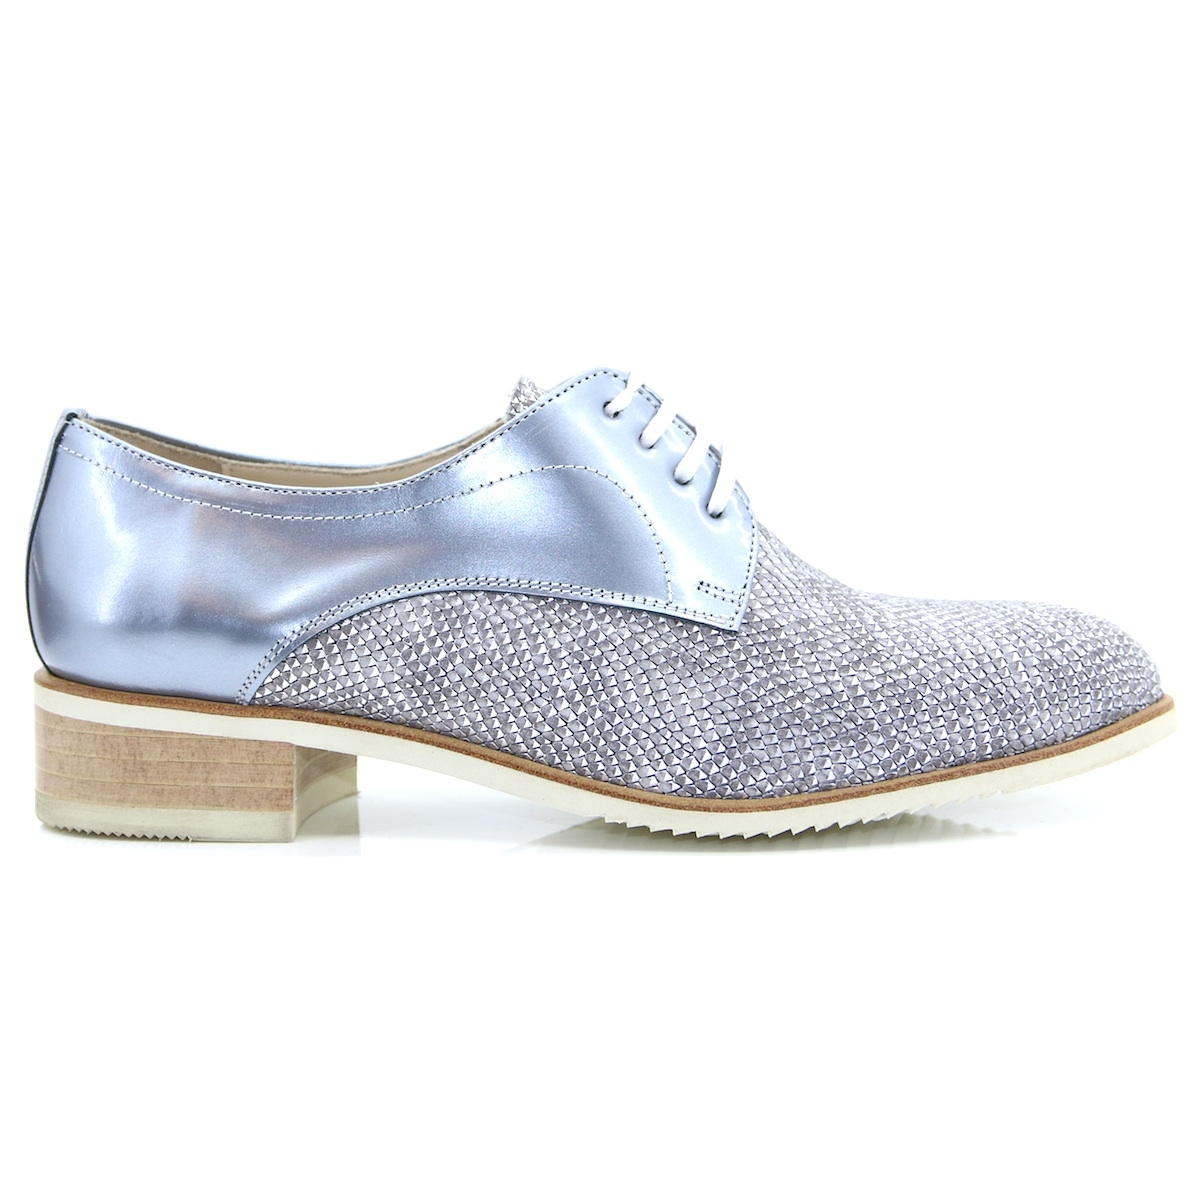 5332 panache silver lace up shoes www panache shoes